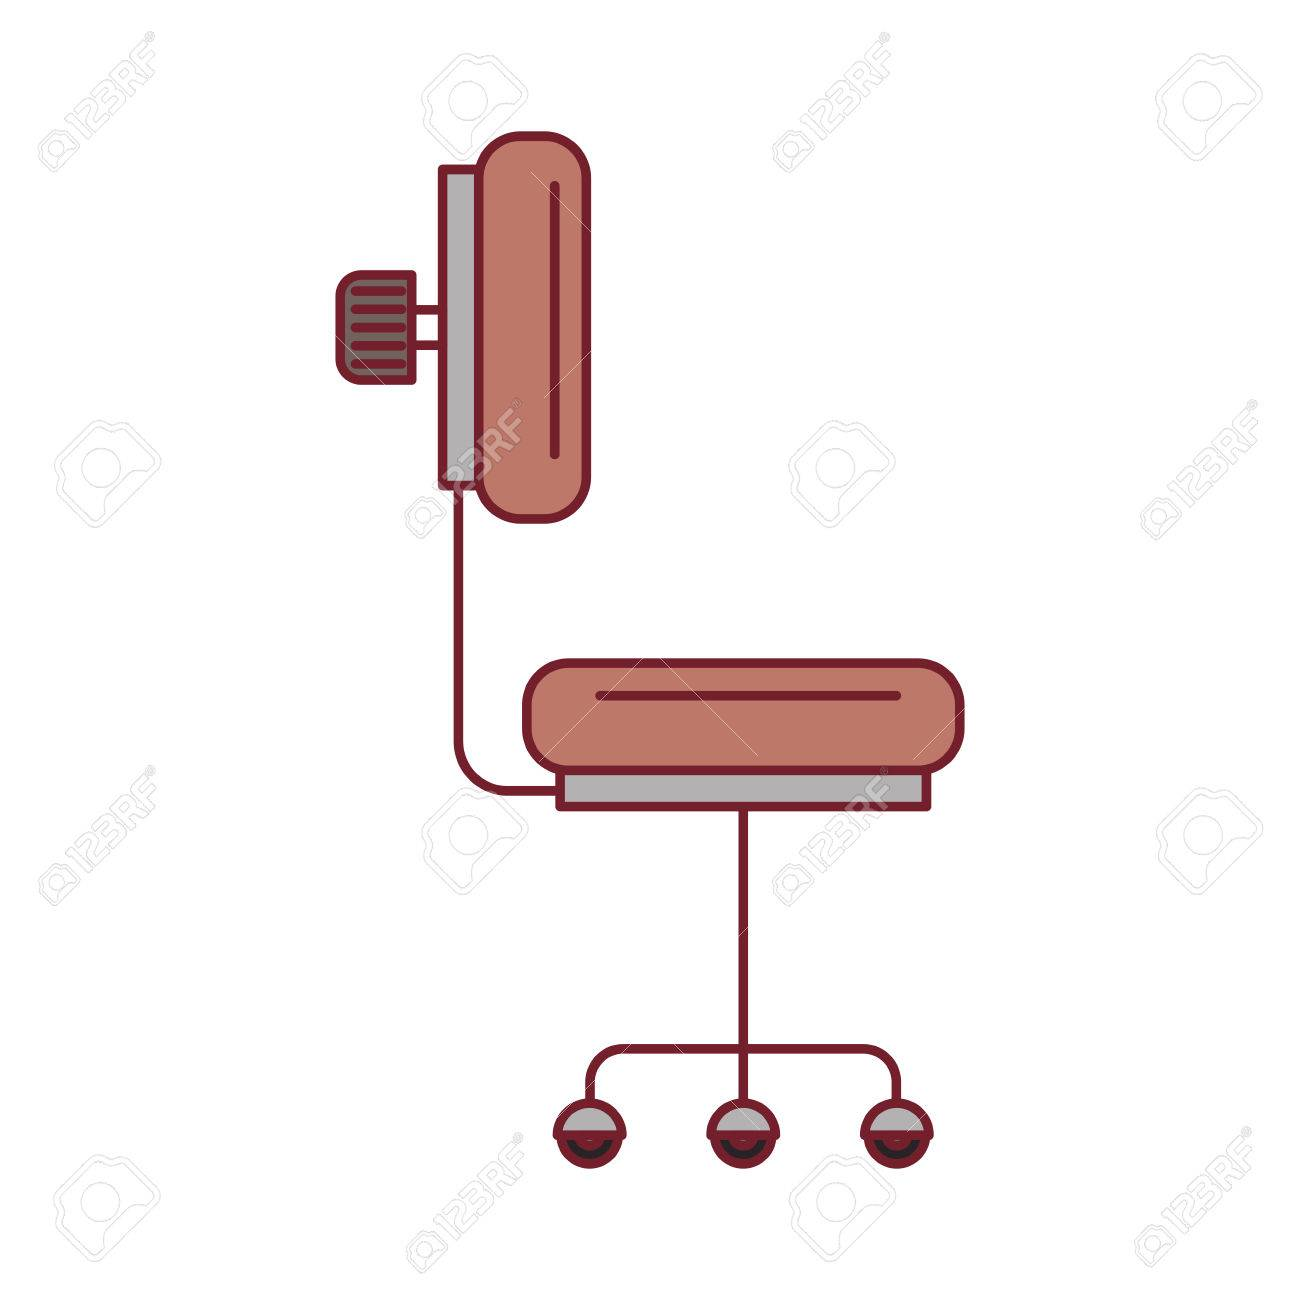 Colorful Graphic Of Office Chair Side View With Dark Red Line ... for office chair vector side view  269ane